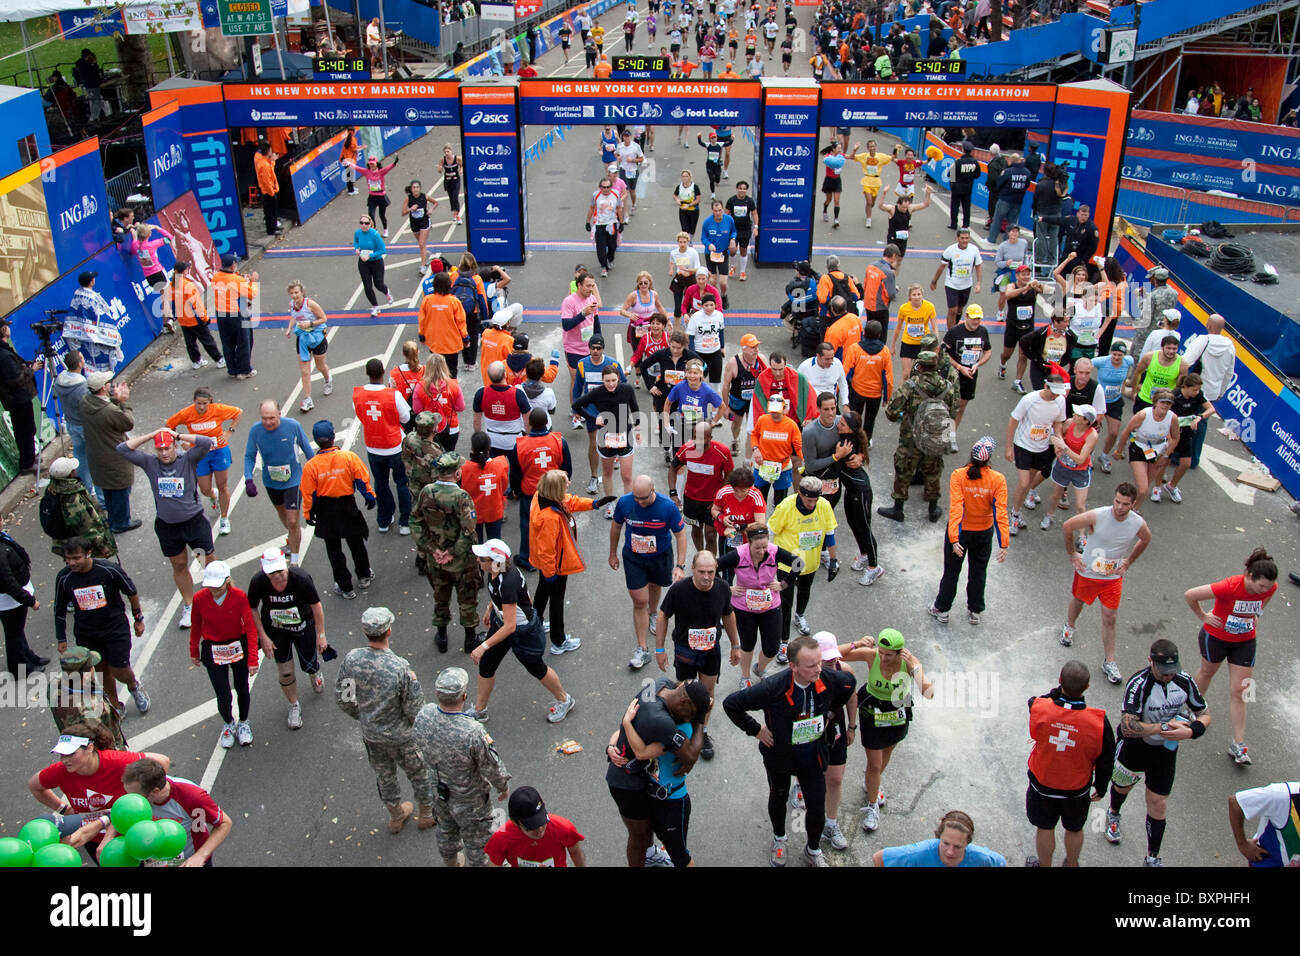 Runners at the finish line in Central Park during 2009 New York City Marathon - Stock Image